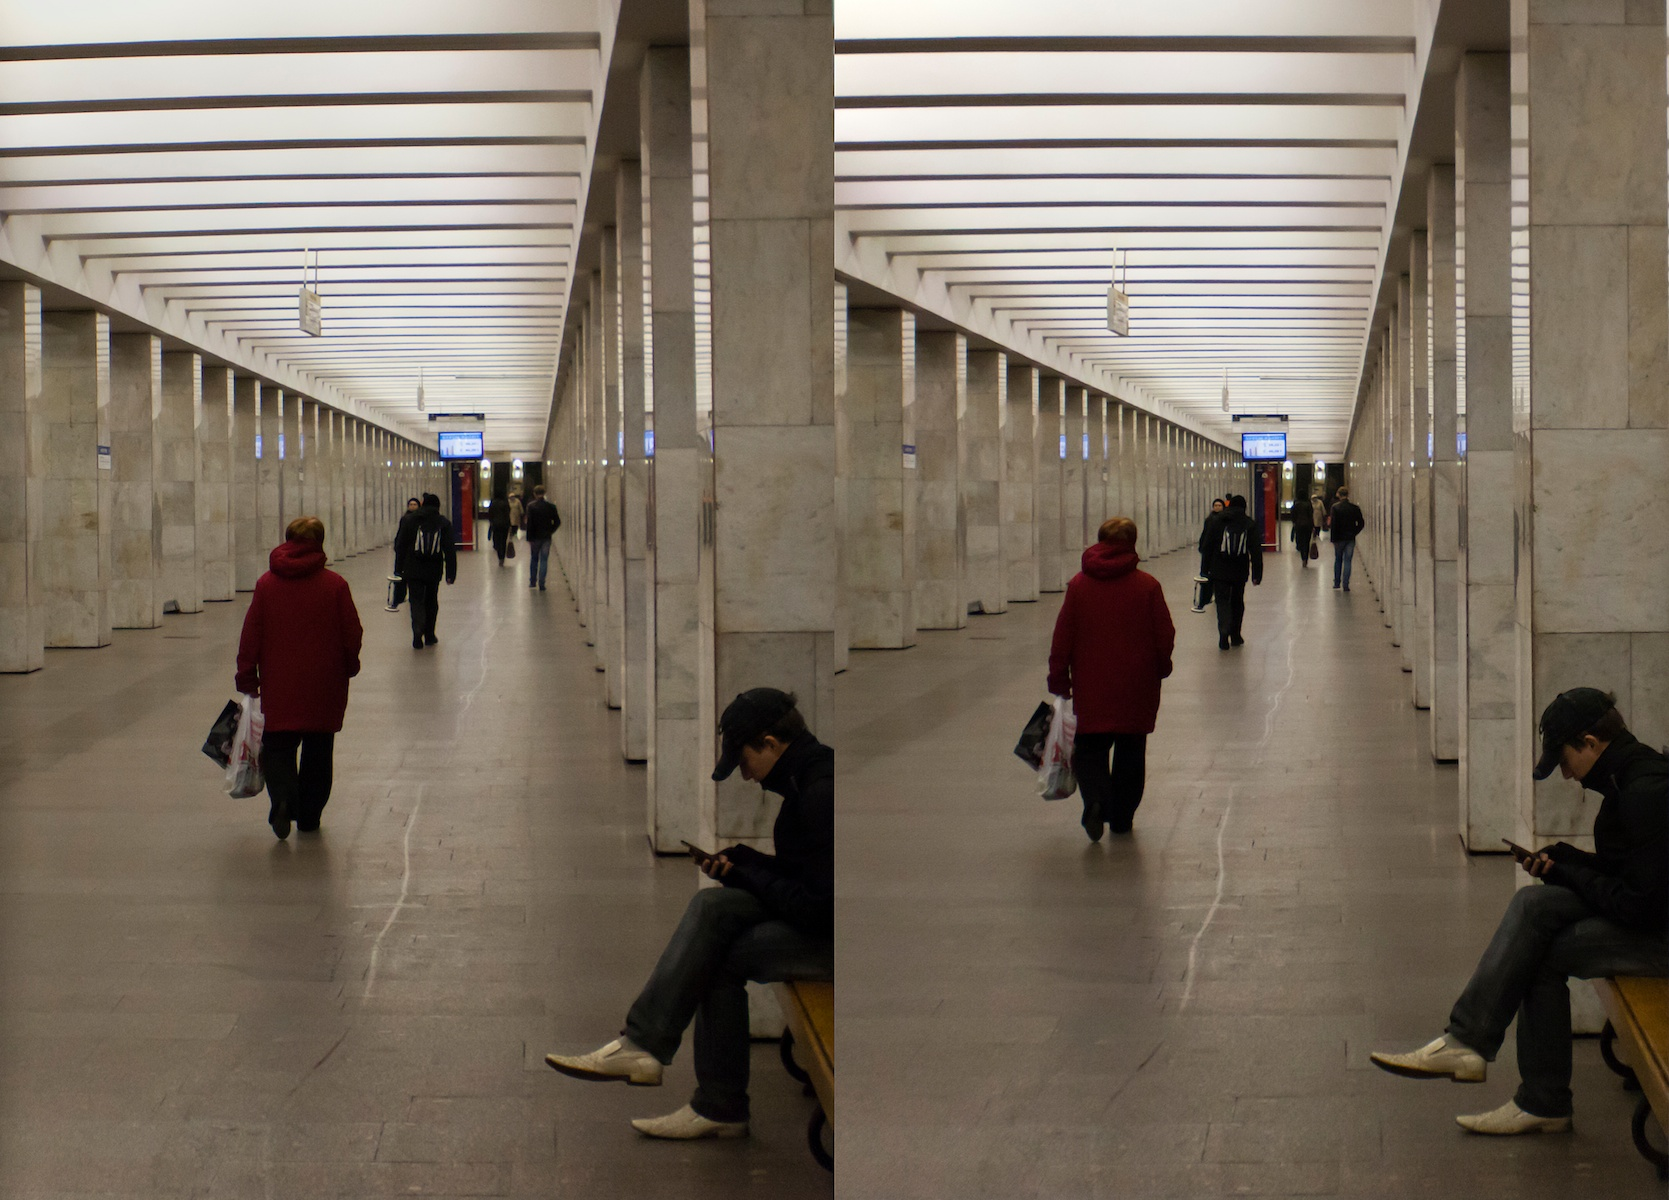 2011 стерео stereo Vladykino metro station, Владыкино, Shot with Loreo 3D lens In A Cap and Canon 5D mark 2